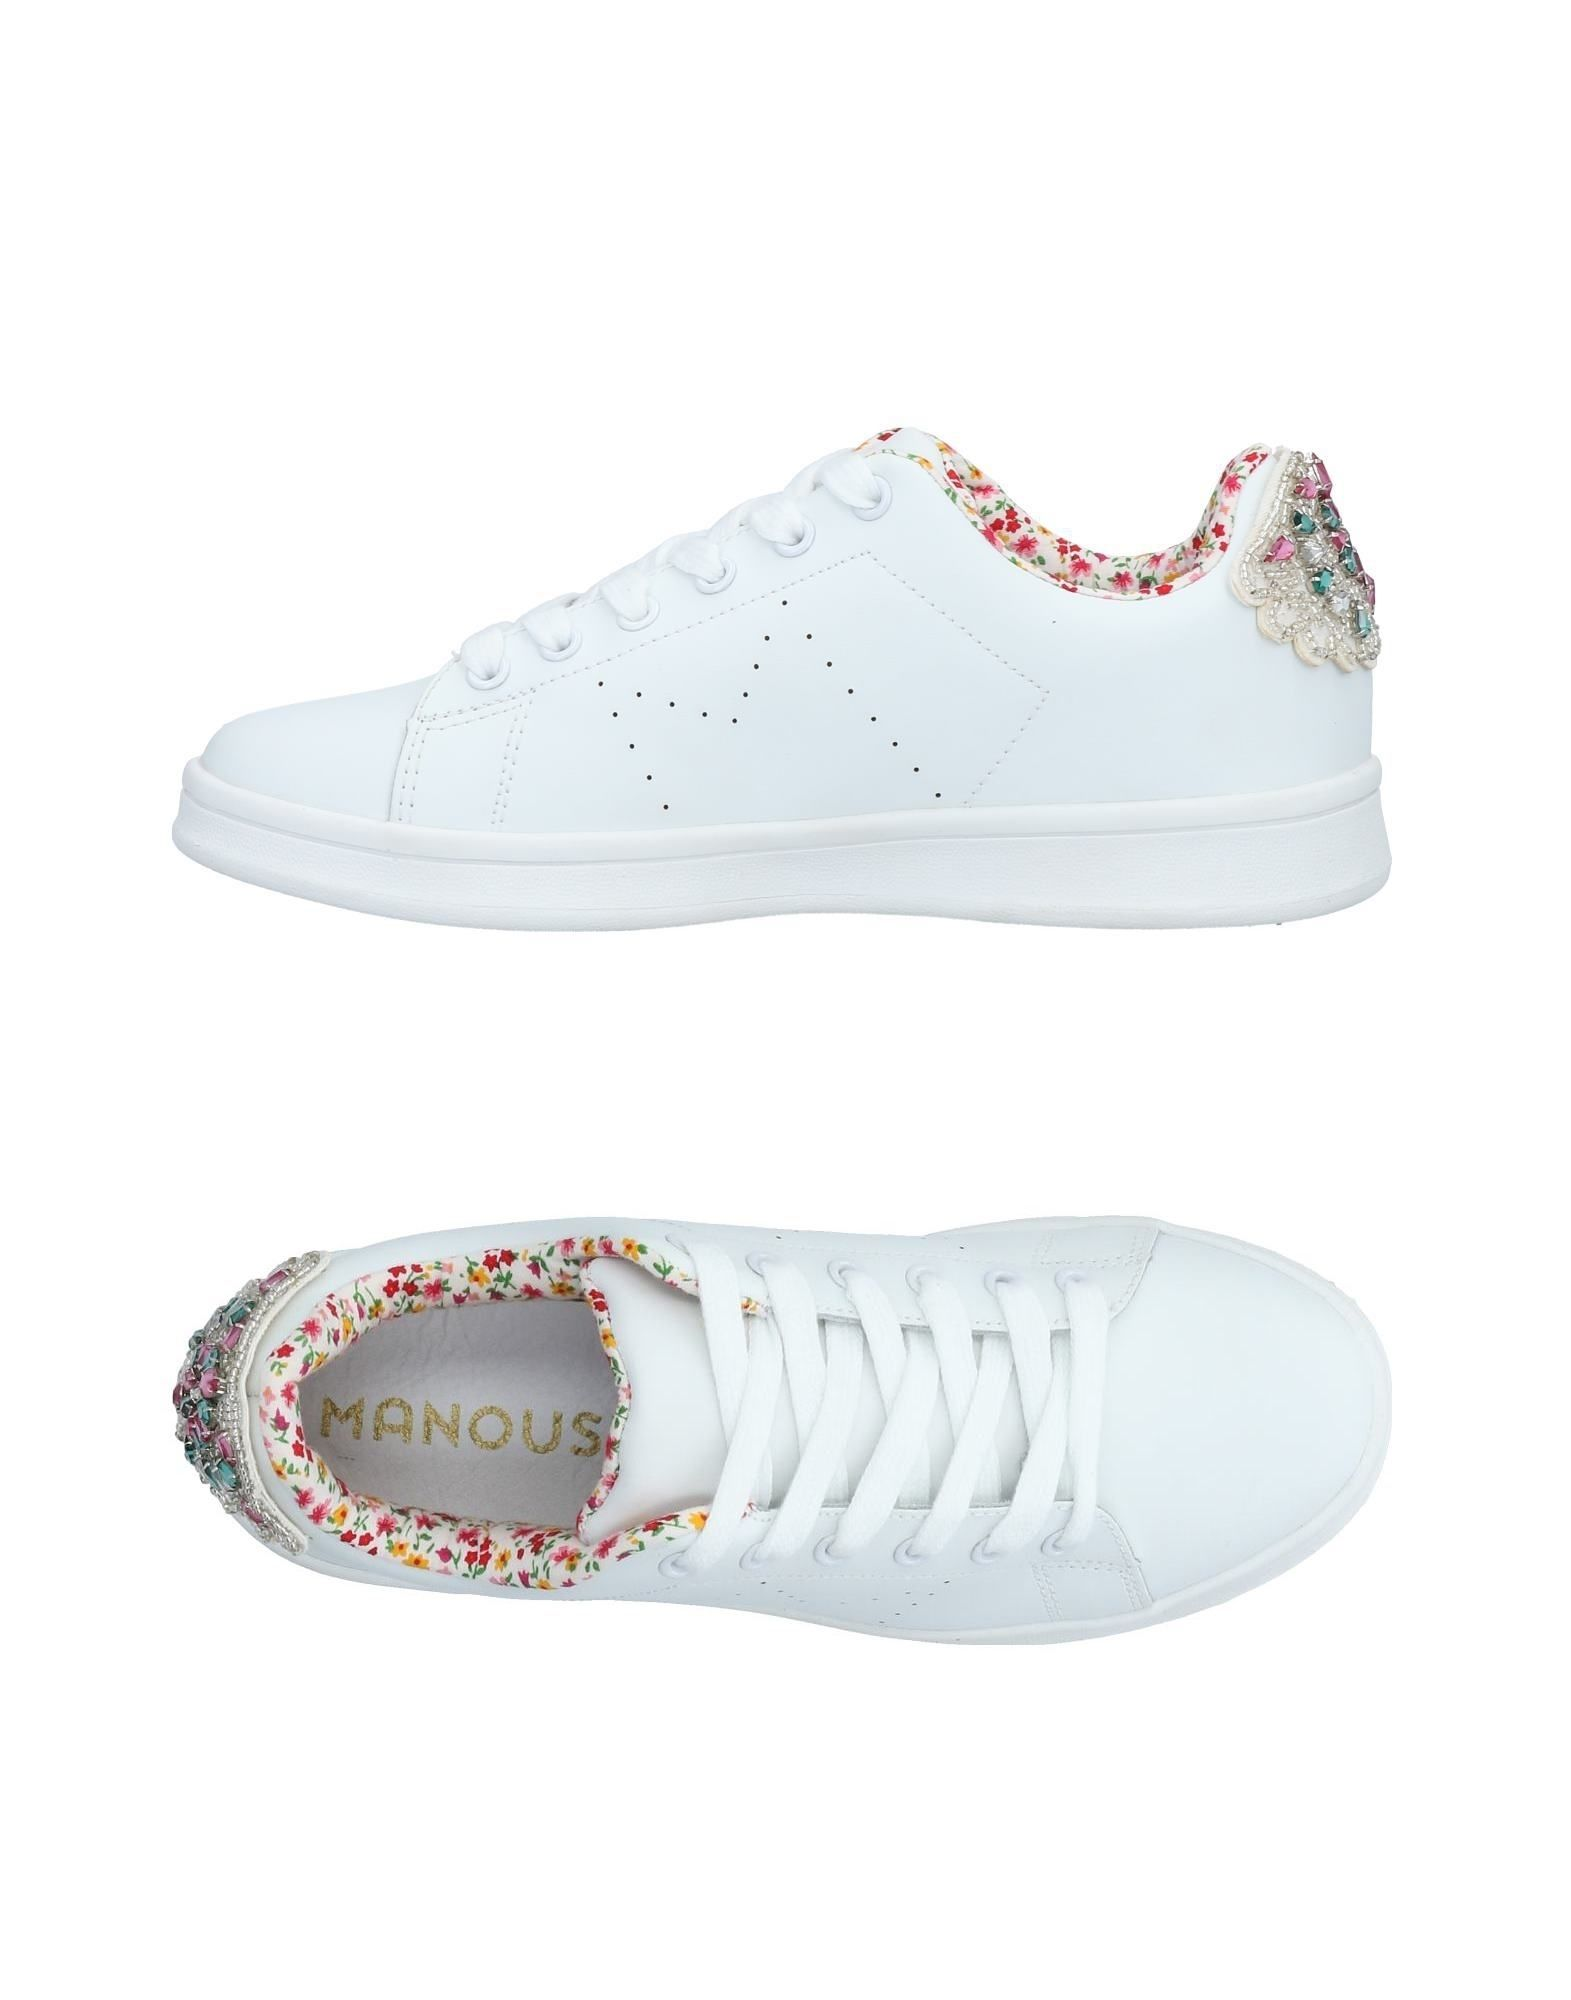 MANOUSH Sneakers in White